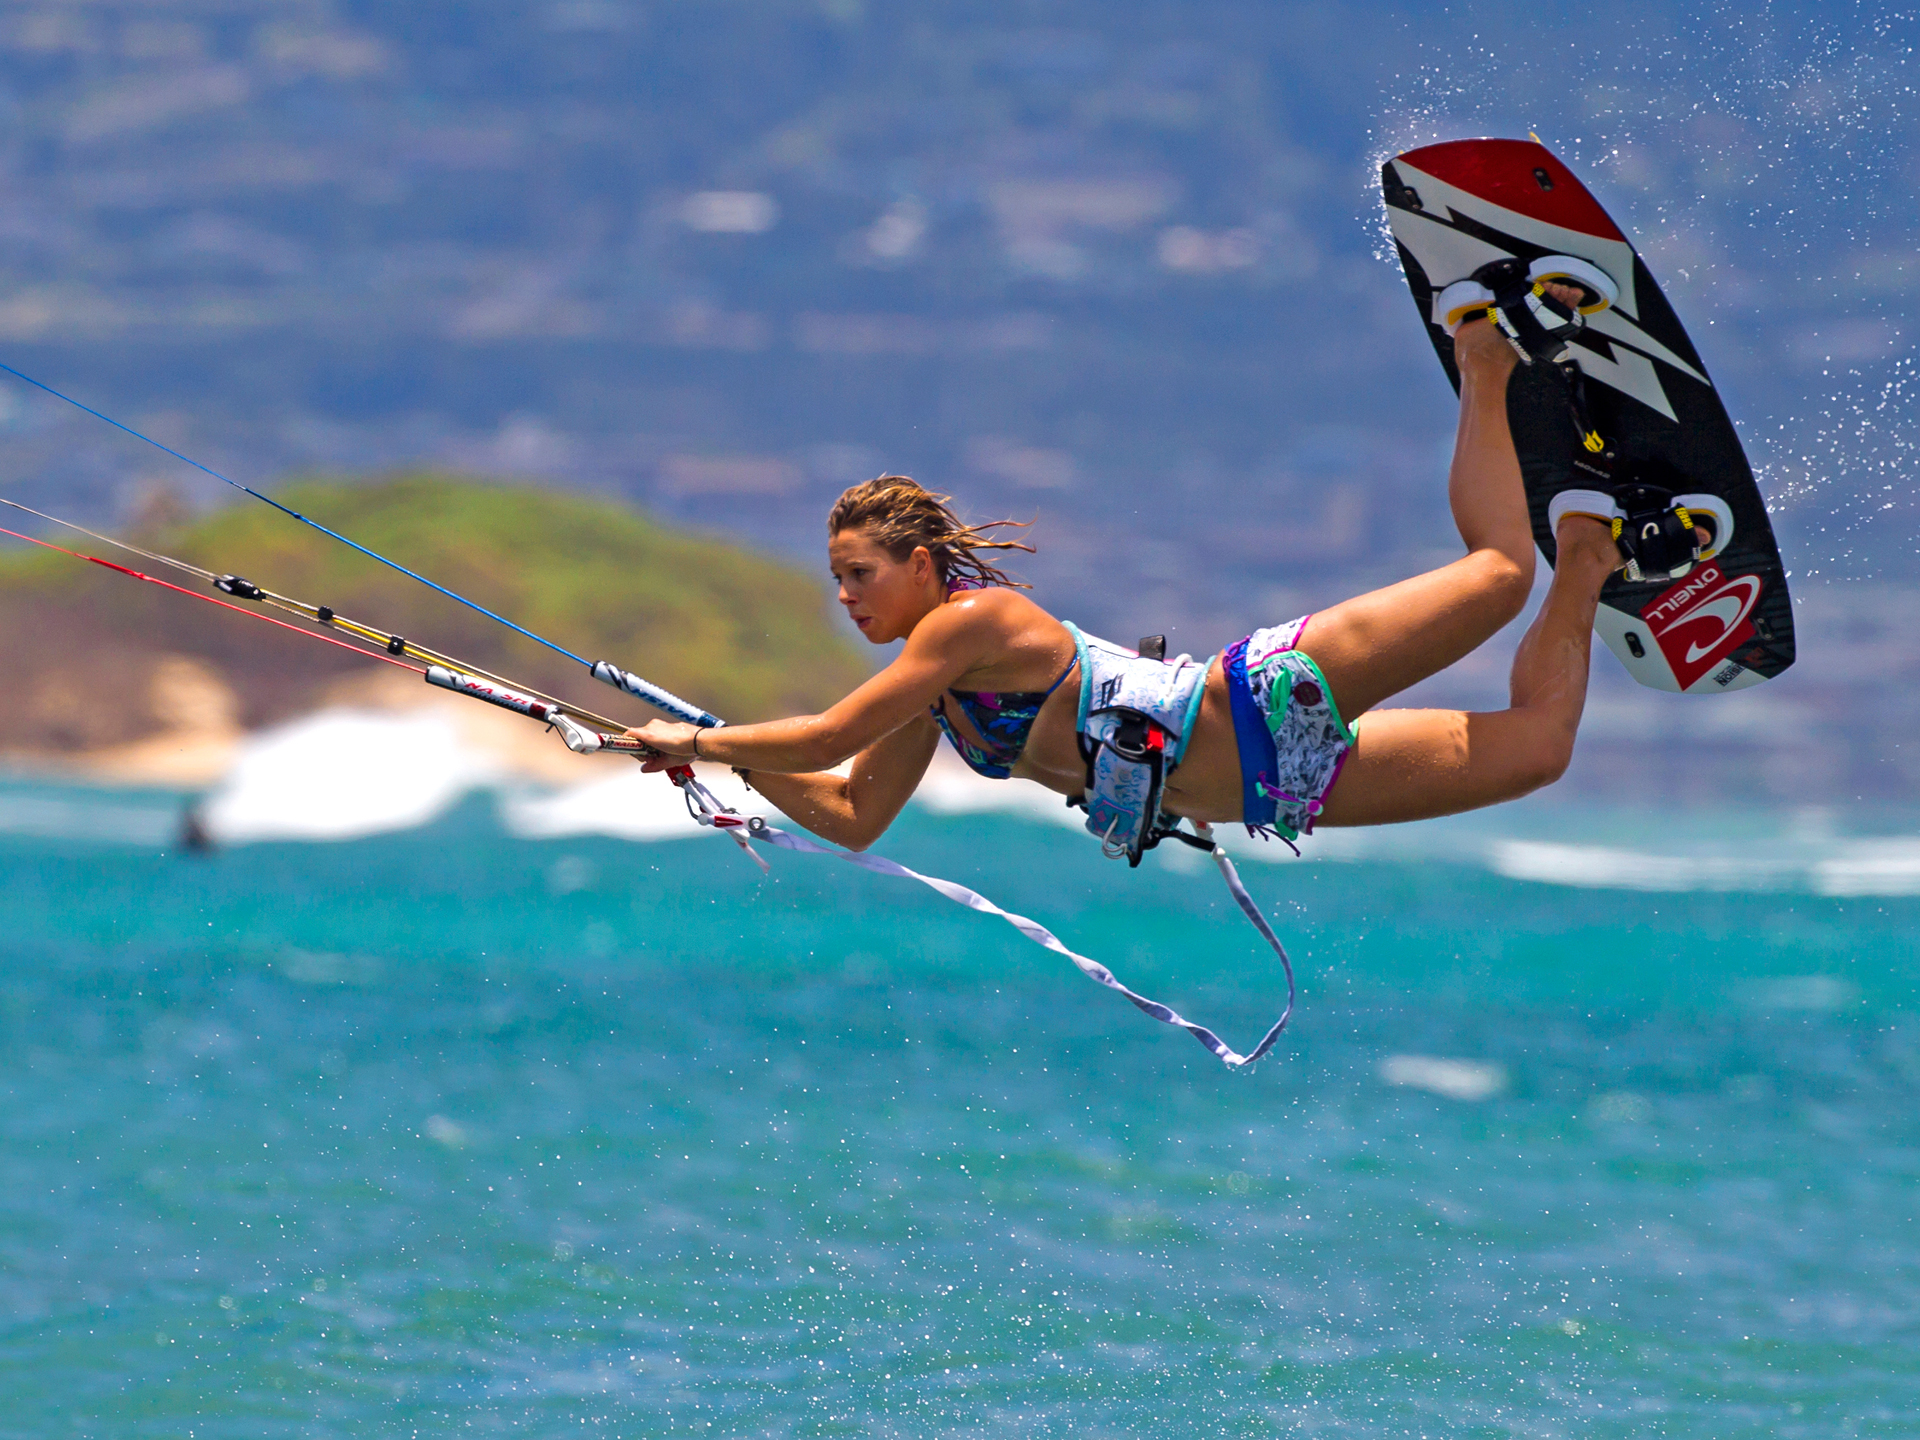 kitesurf wallpaper image - Jalou Langeree popping a raily - in resolution: Standard 4:3 1920 X 1440